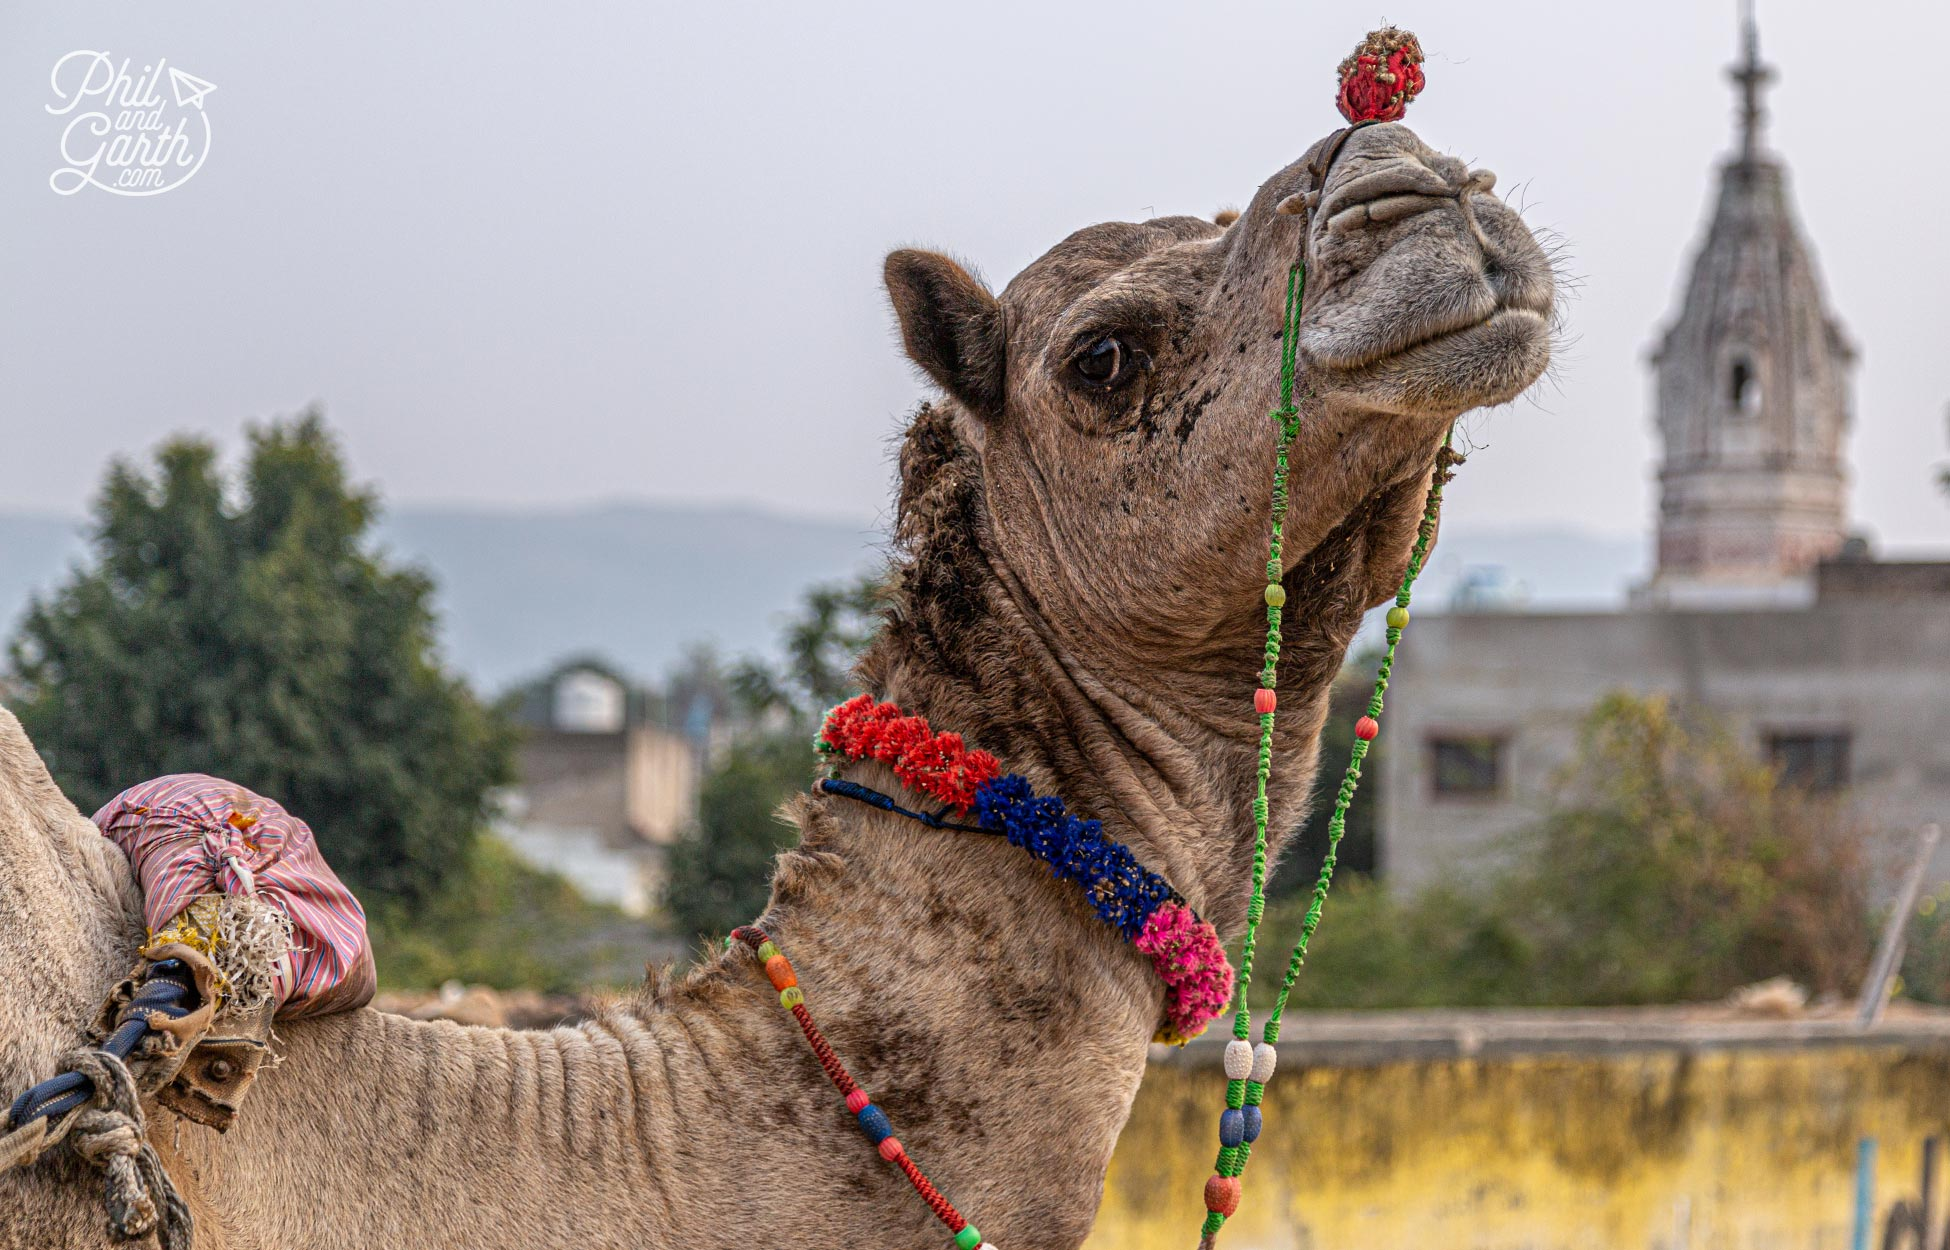 Camel safaris are a popular excursion for tourists, but not for us